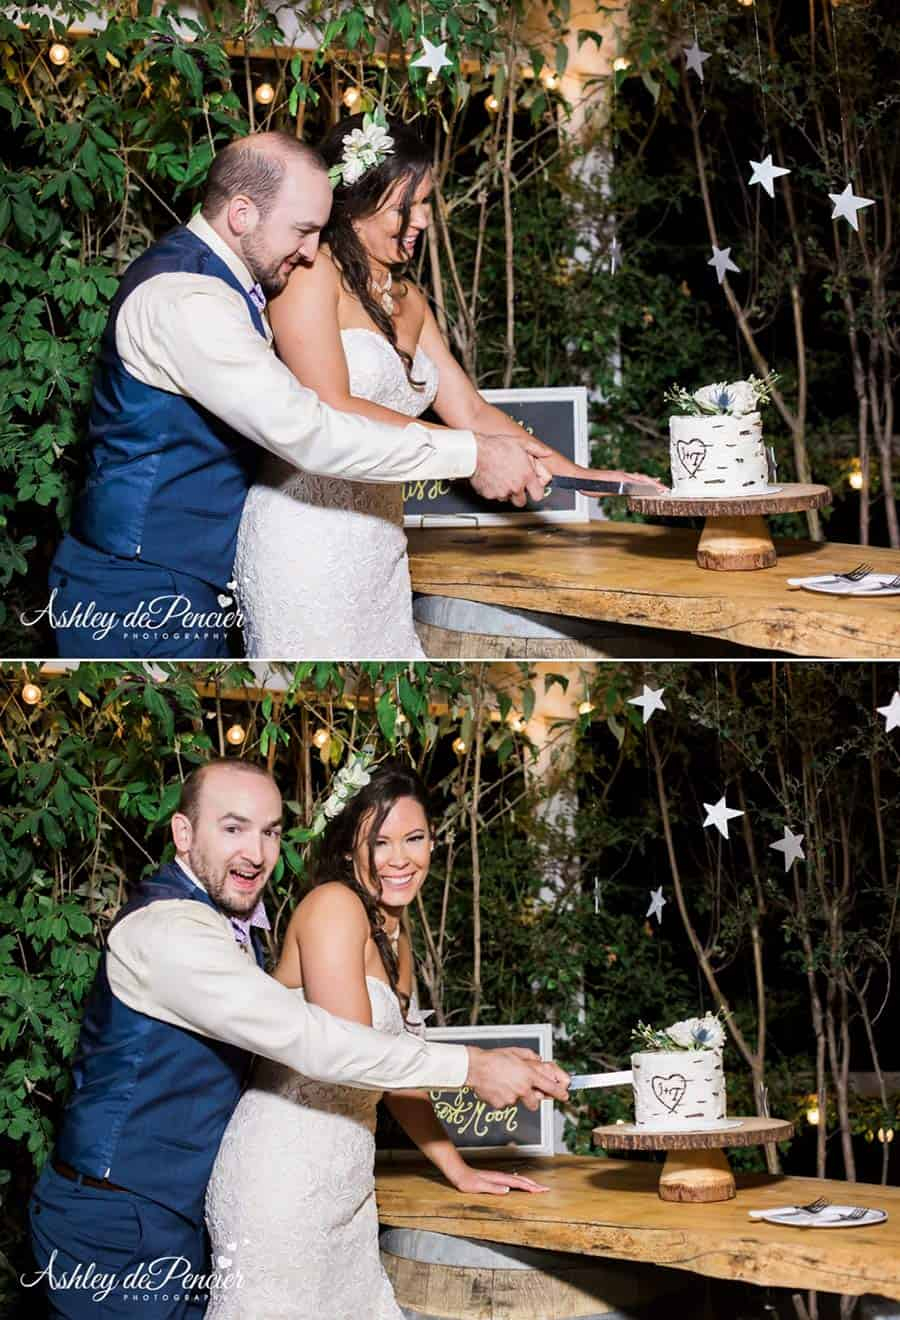 Bride and groom cutting a cake